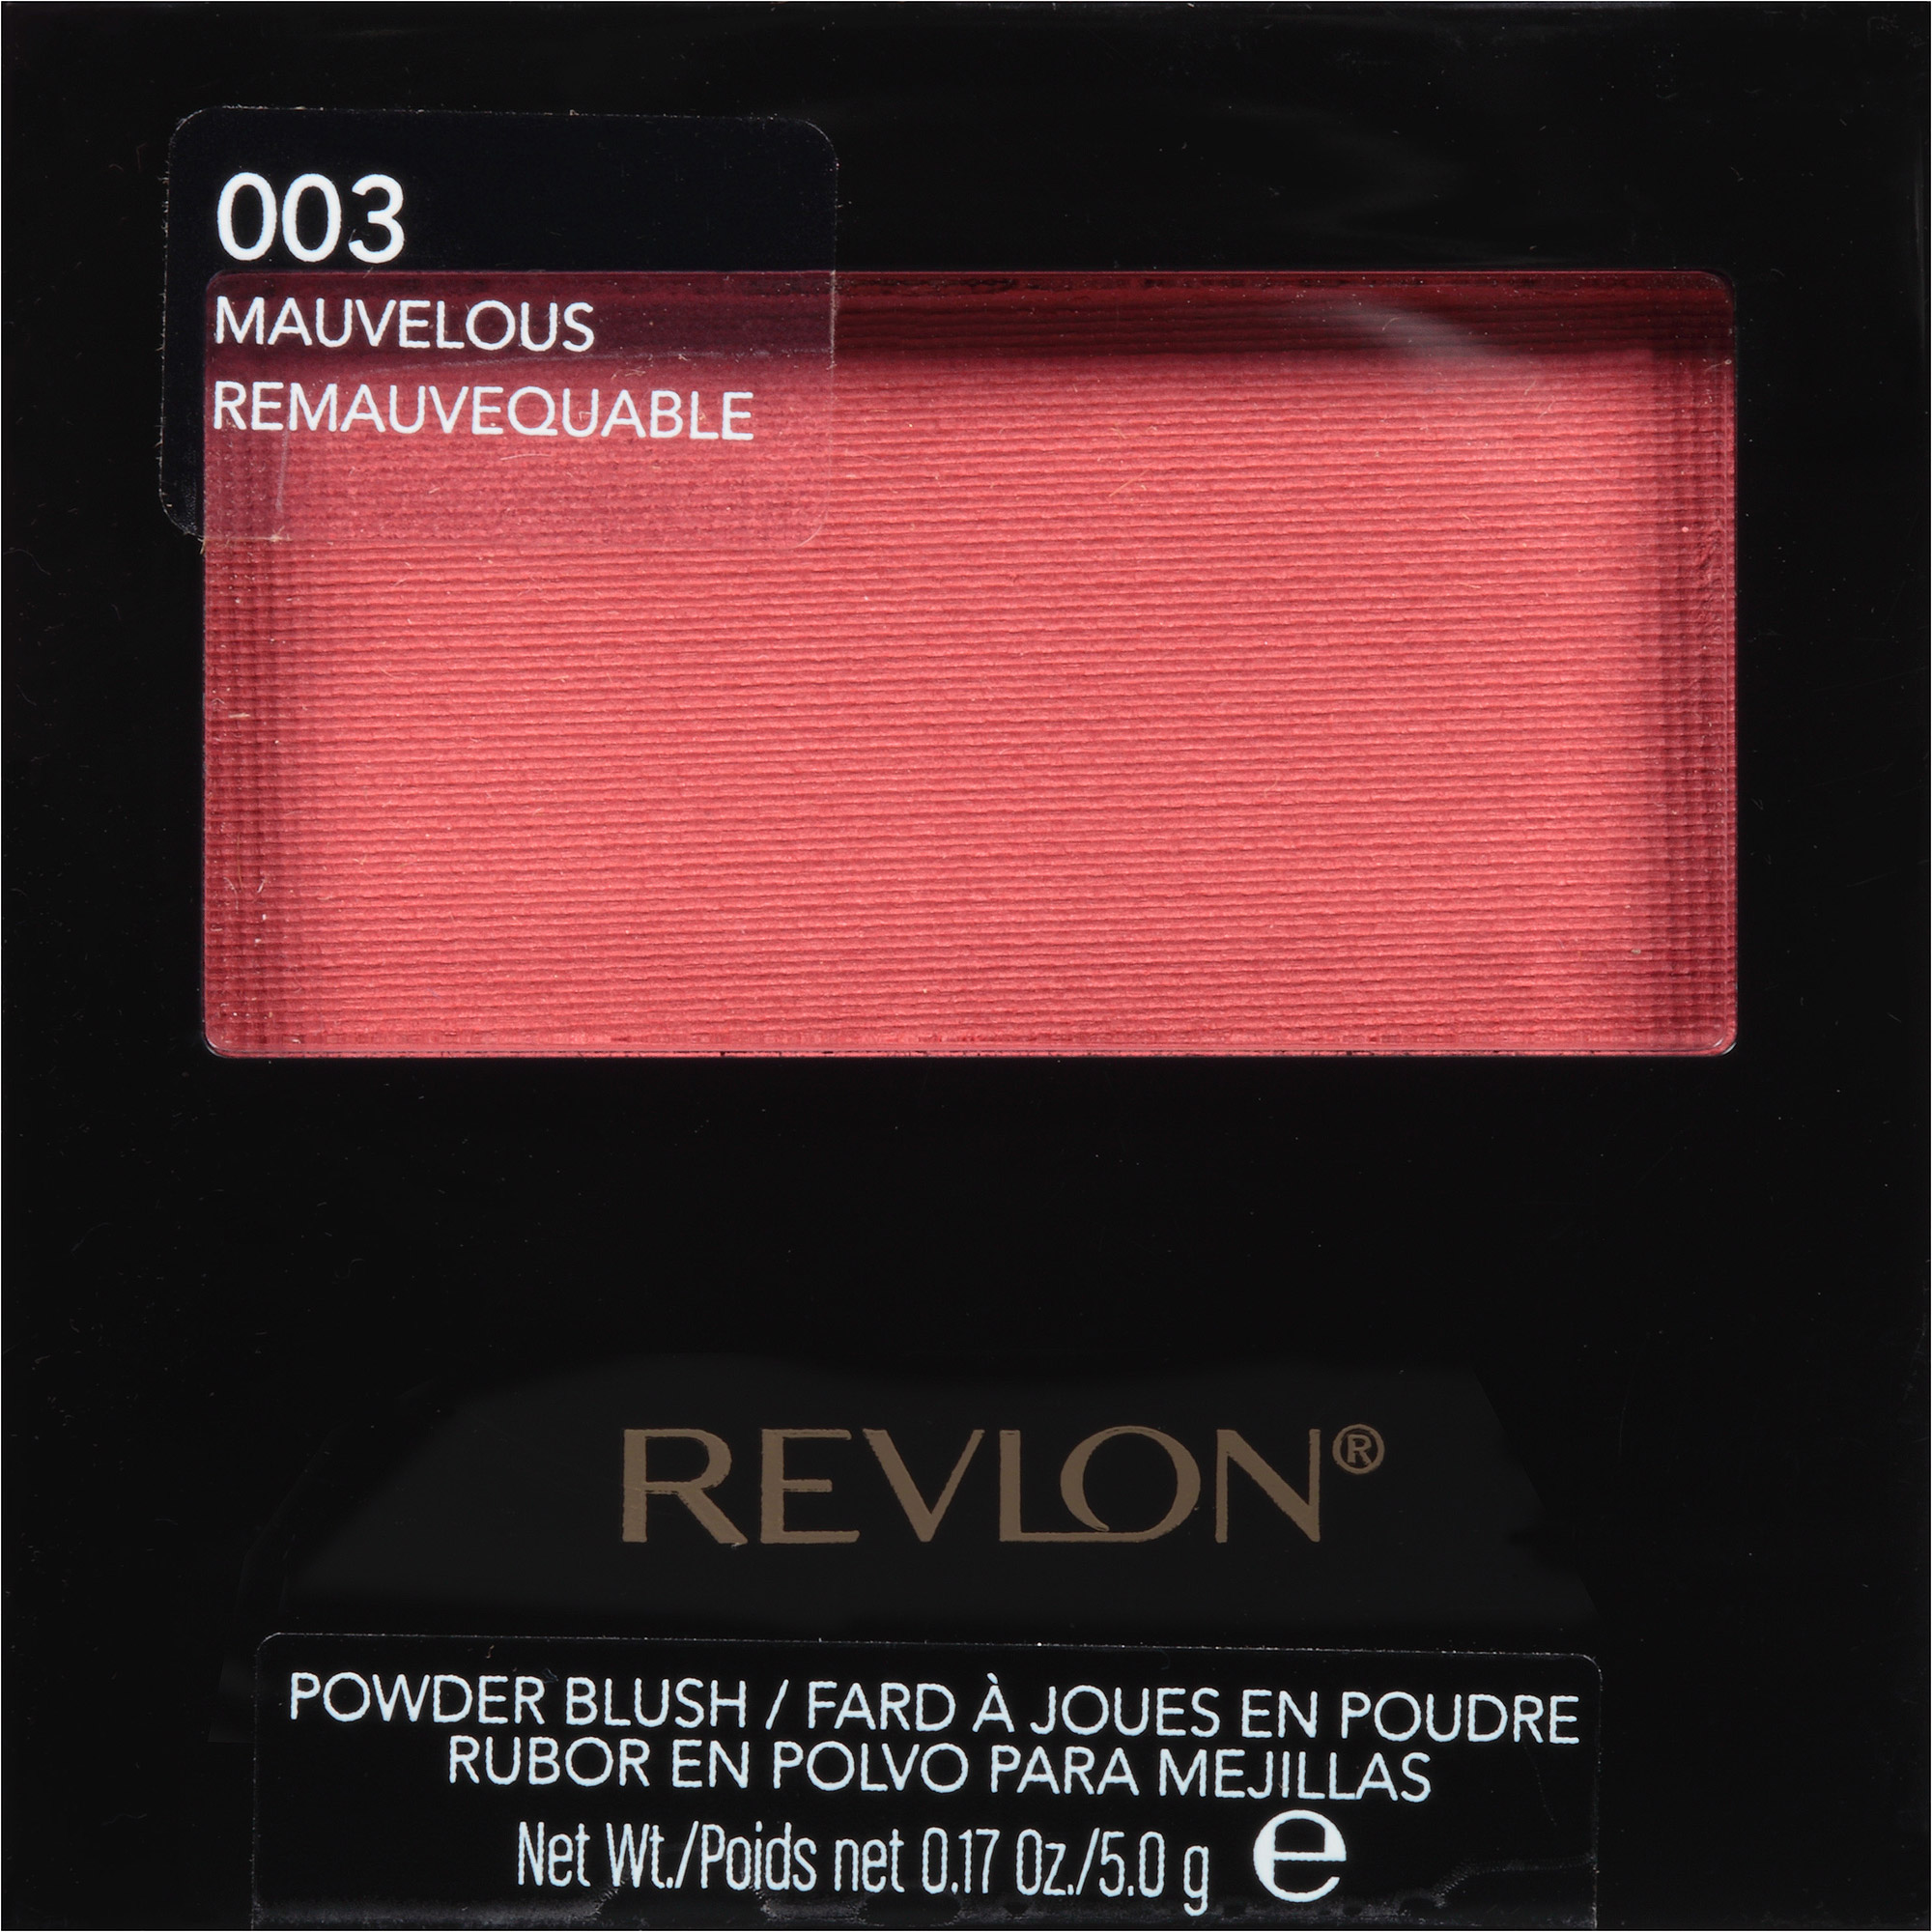 Revlon Powder Blush, 003 Mauvelous, 0.17 oz